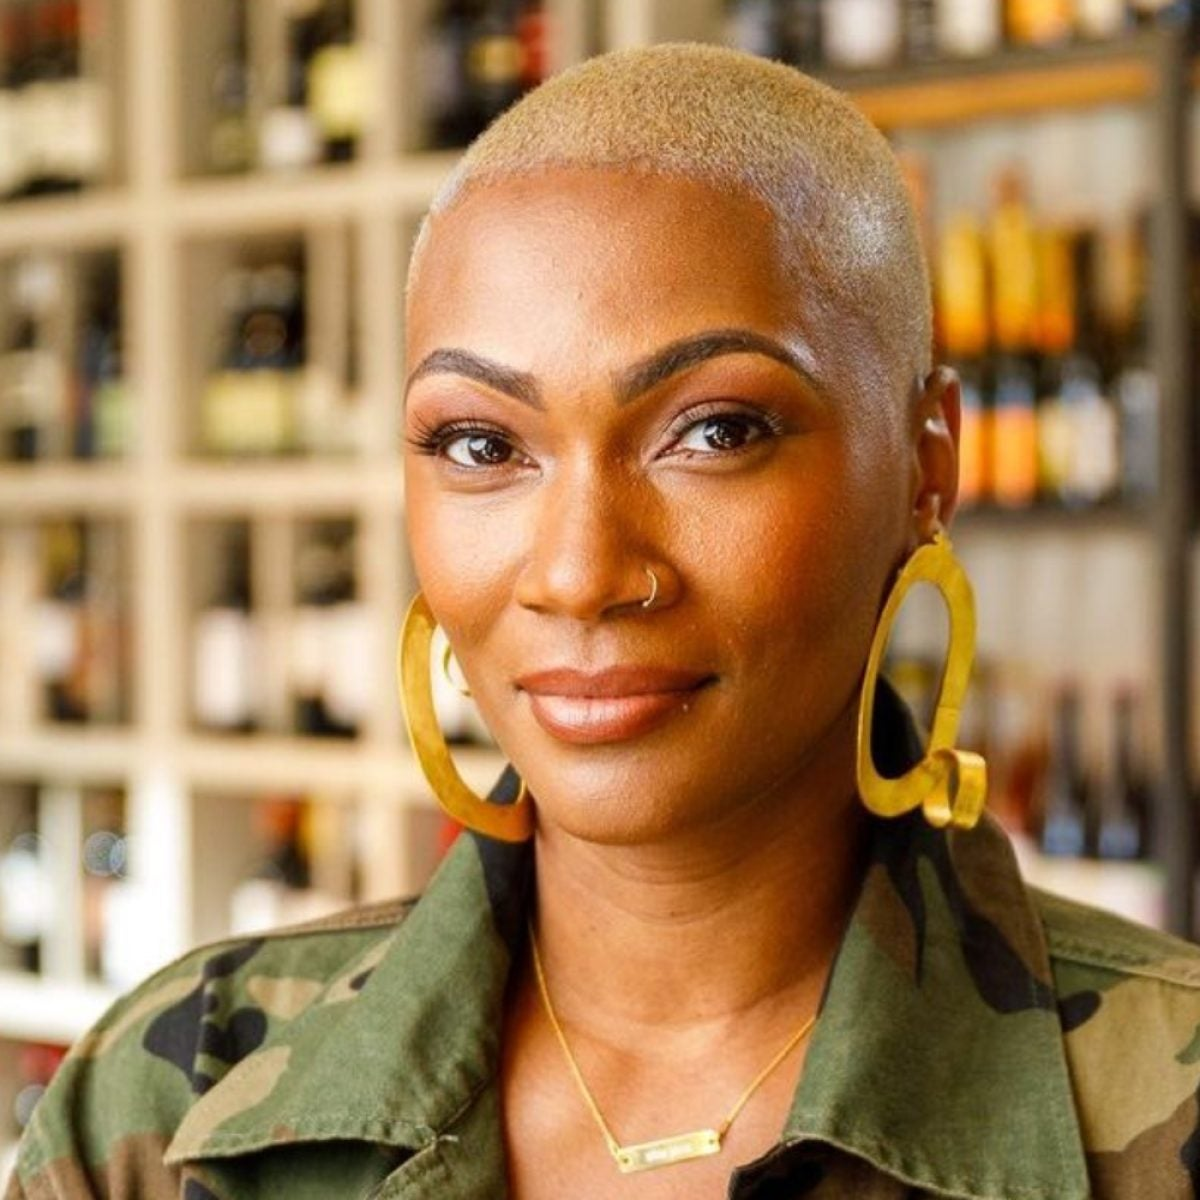 Let's Toast: Tahiirah Habibi On Empowering Black People Through Wine, Finding Quality Bottles For Under $10